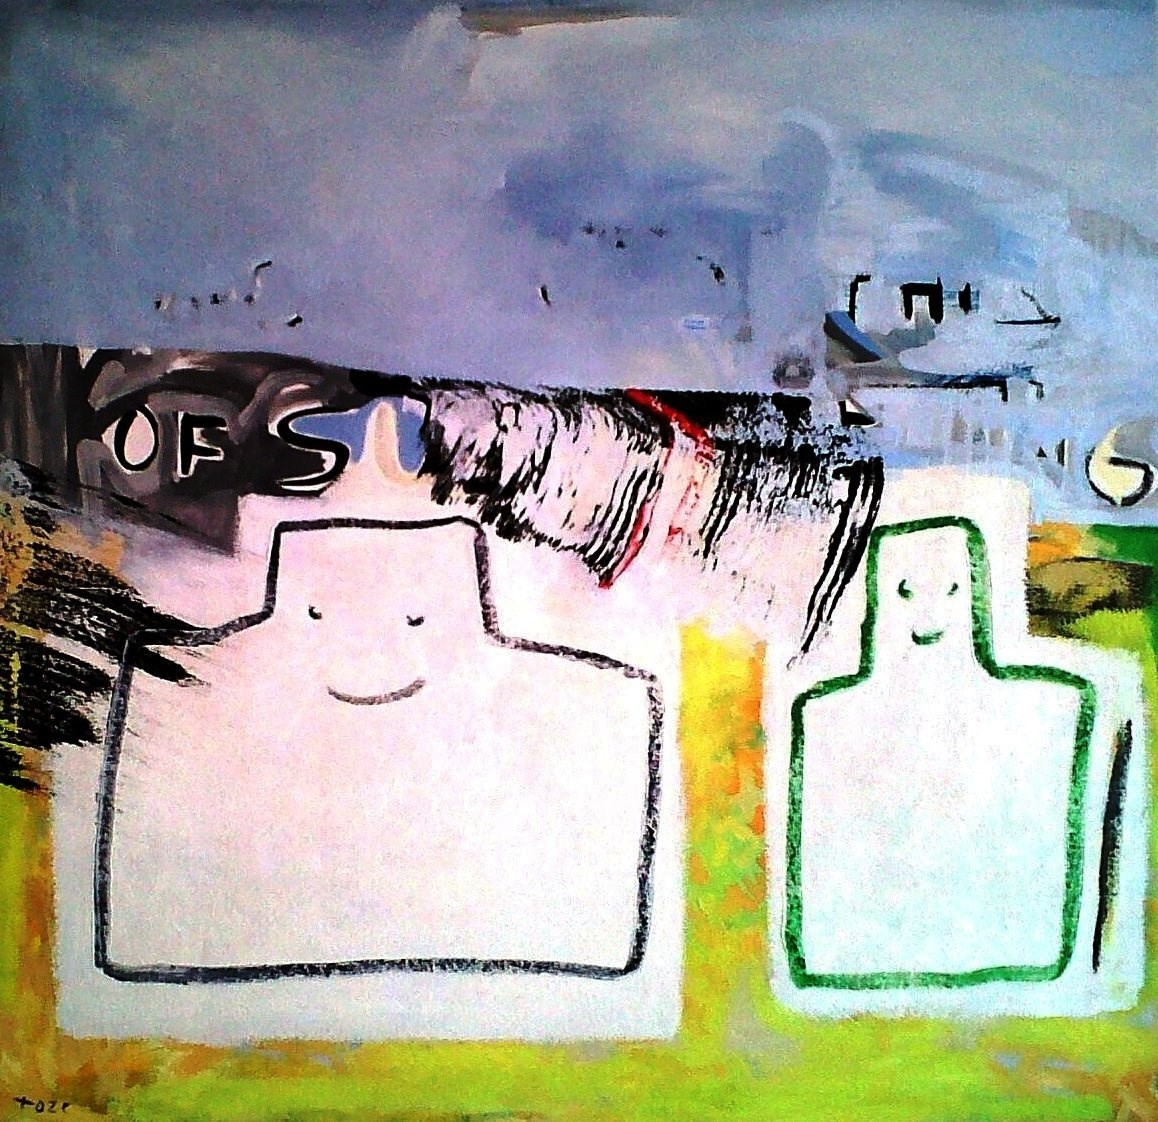 Untitled (Who Would Think of Such a Thing), Pintura Tela Abstrato original por Toze Figueiredo